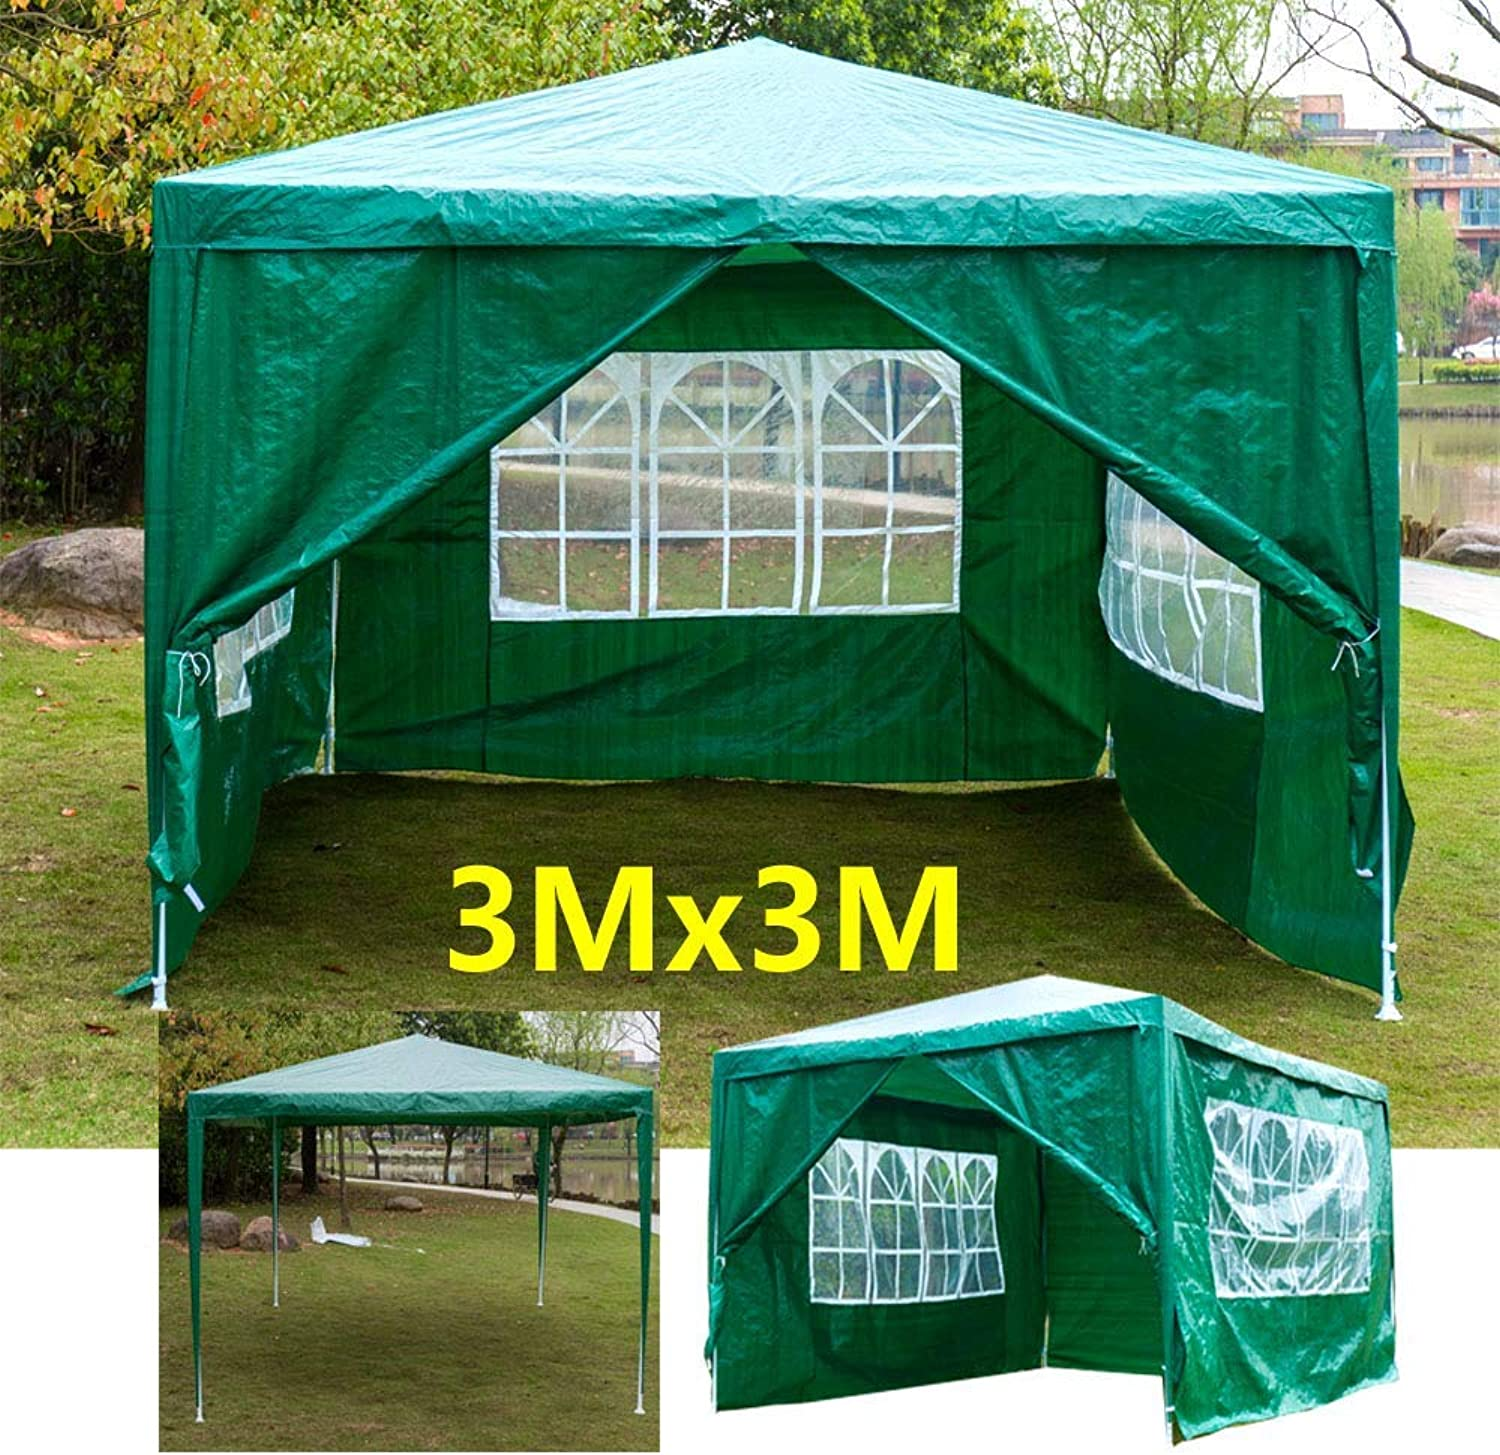 3x3 Metres Gazebo Waterproof Outdoor Tent Marquee Awning Canopy 4 Side Walls 3 with Windows 1 Door with Zip Easy Assemble and Remove, Green